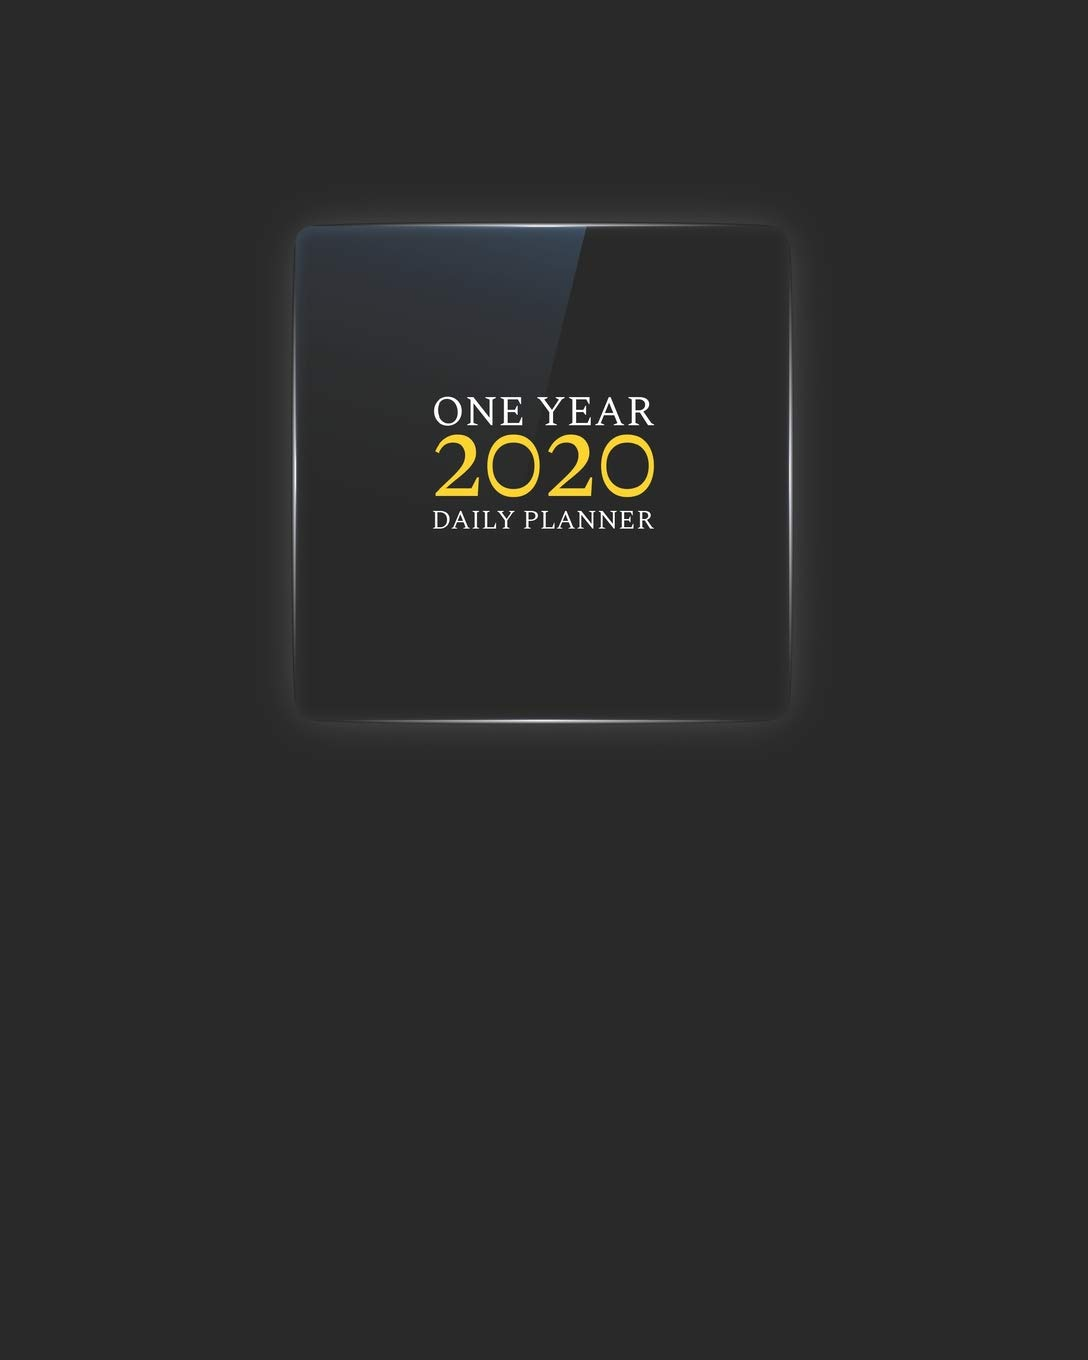 2020 One Year Daily Planner: Elegant Black Glass Daily ...